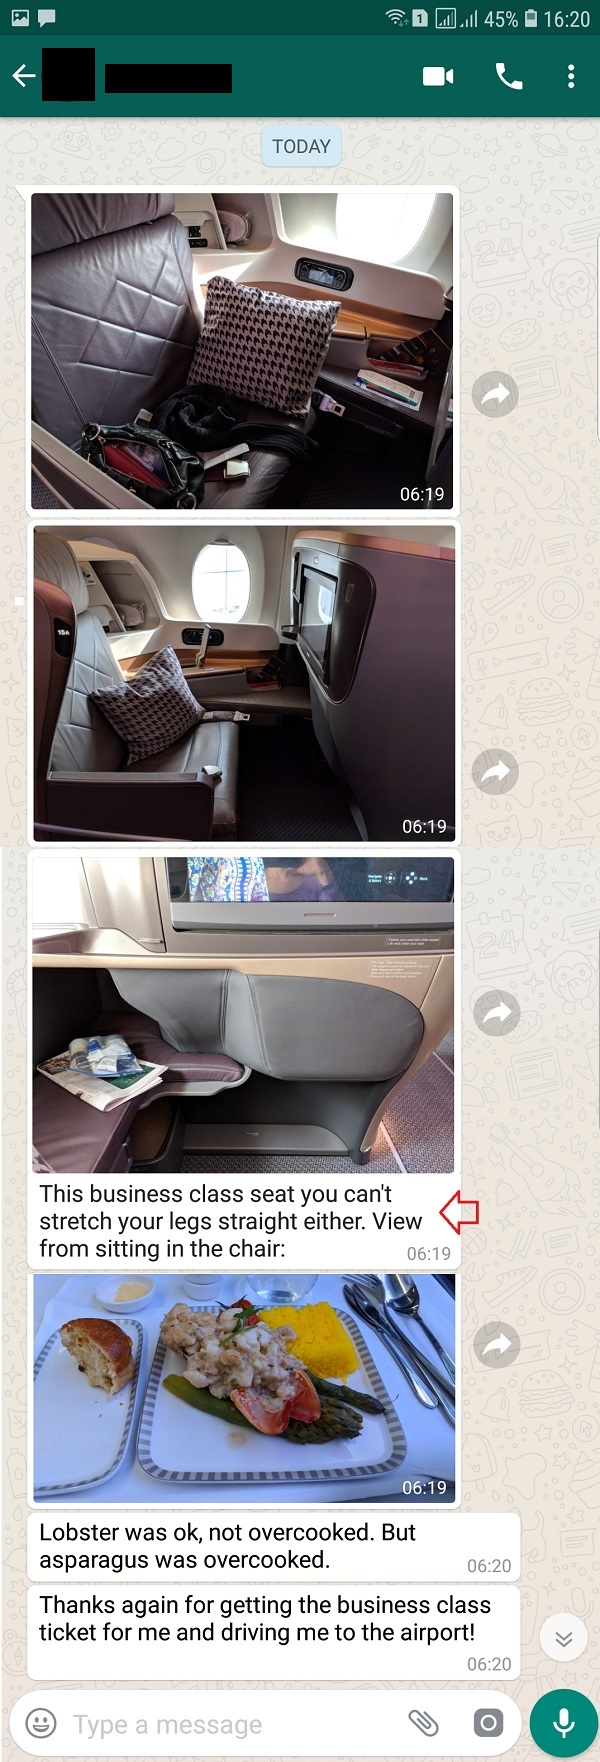 Singapore Airlines Airbus A350 Business Class seat Live Report